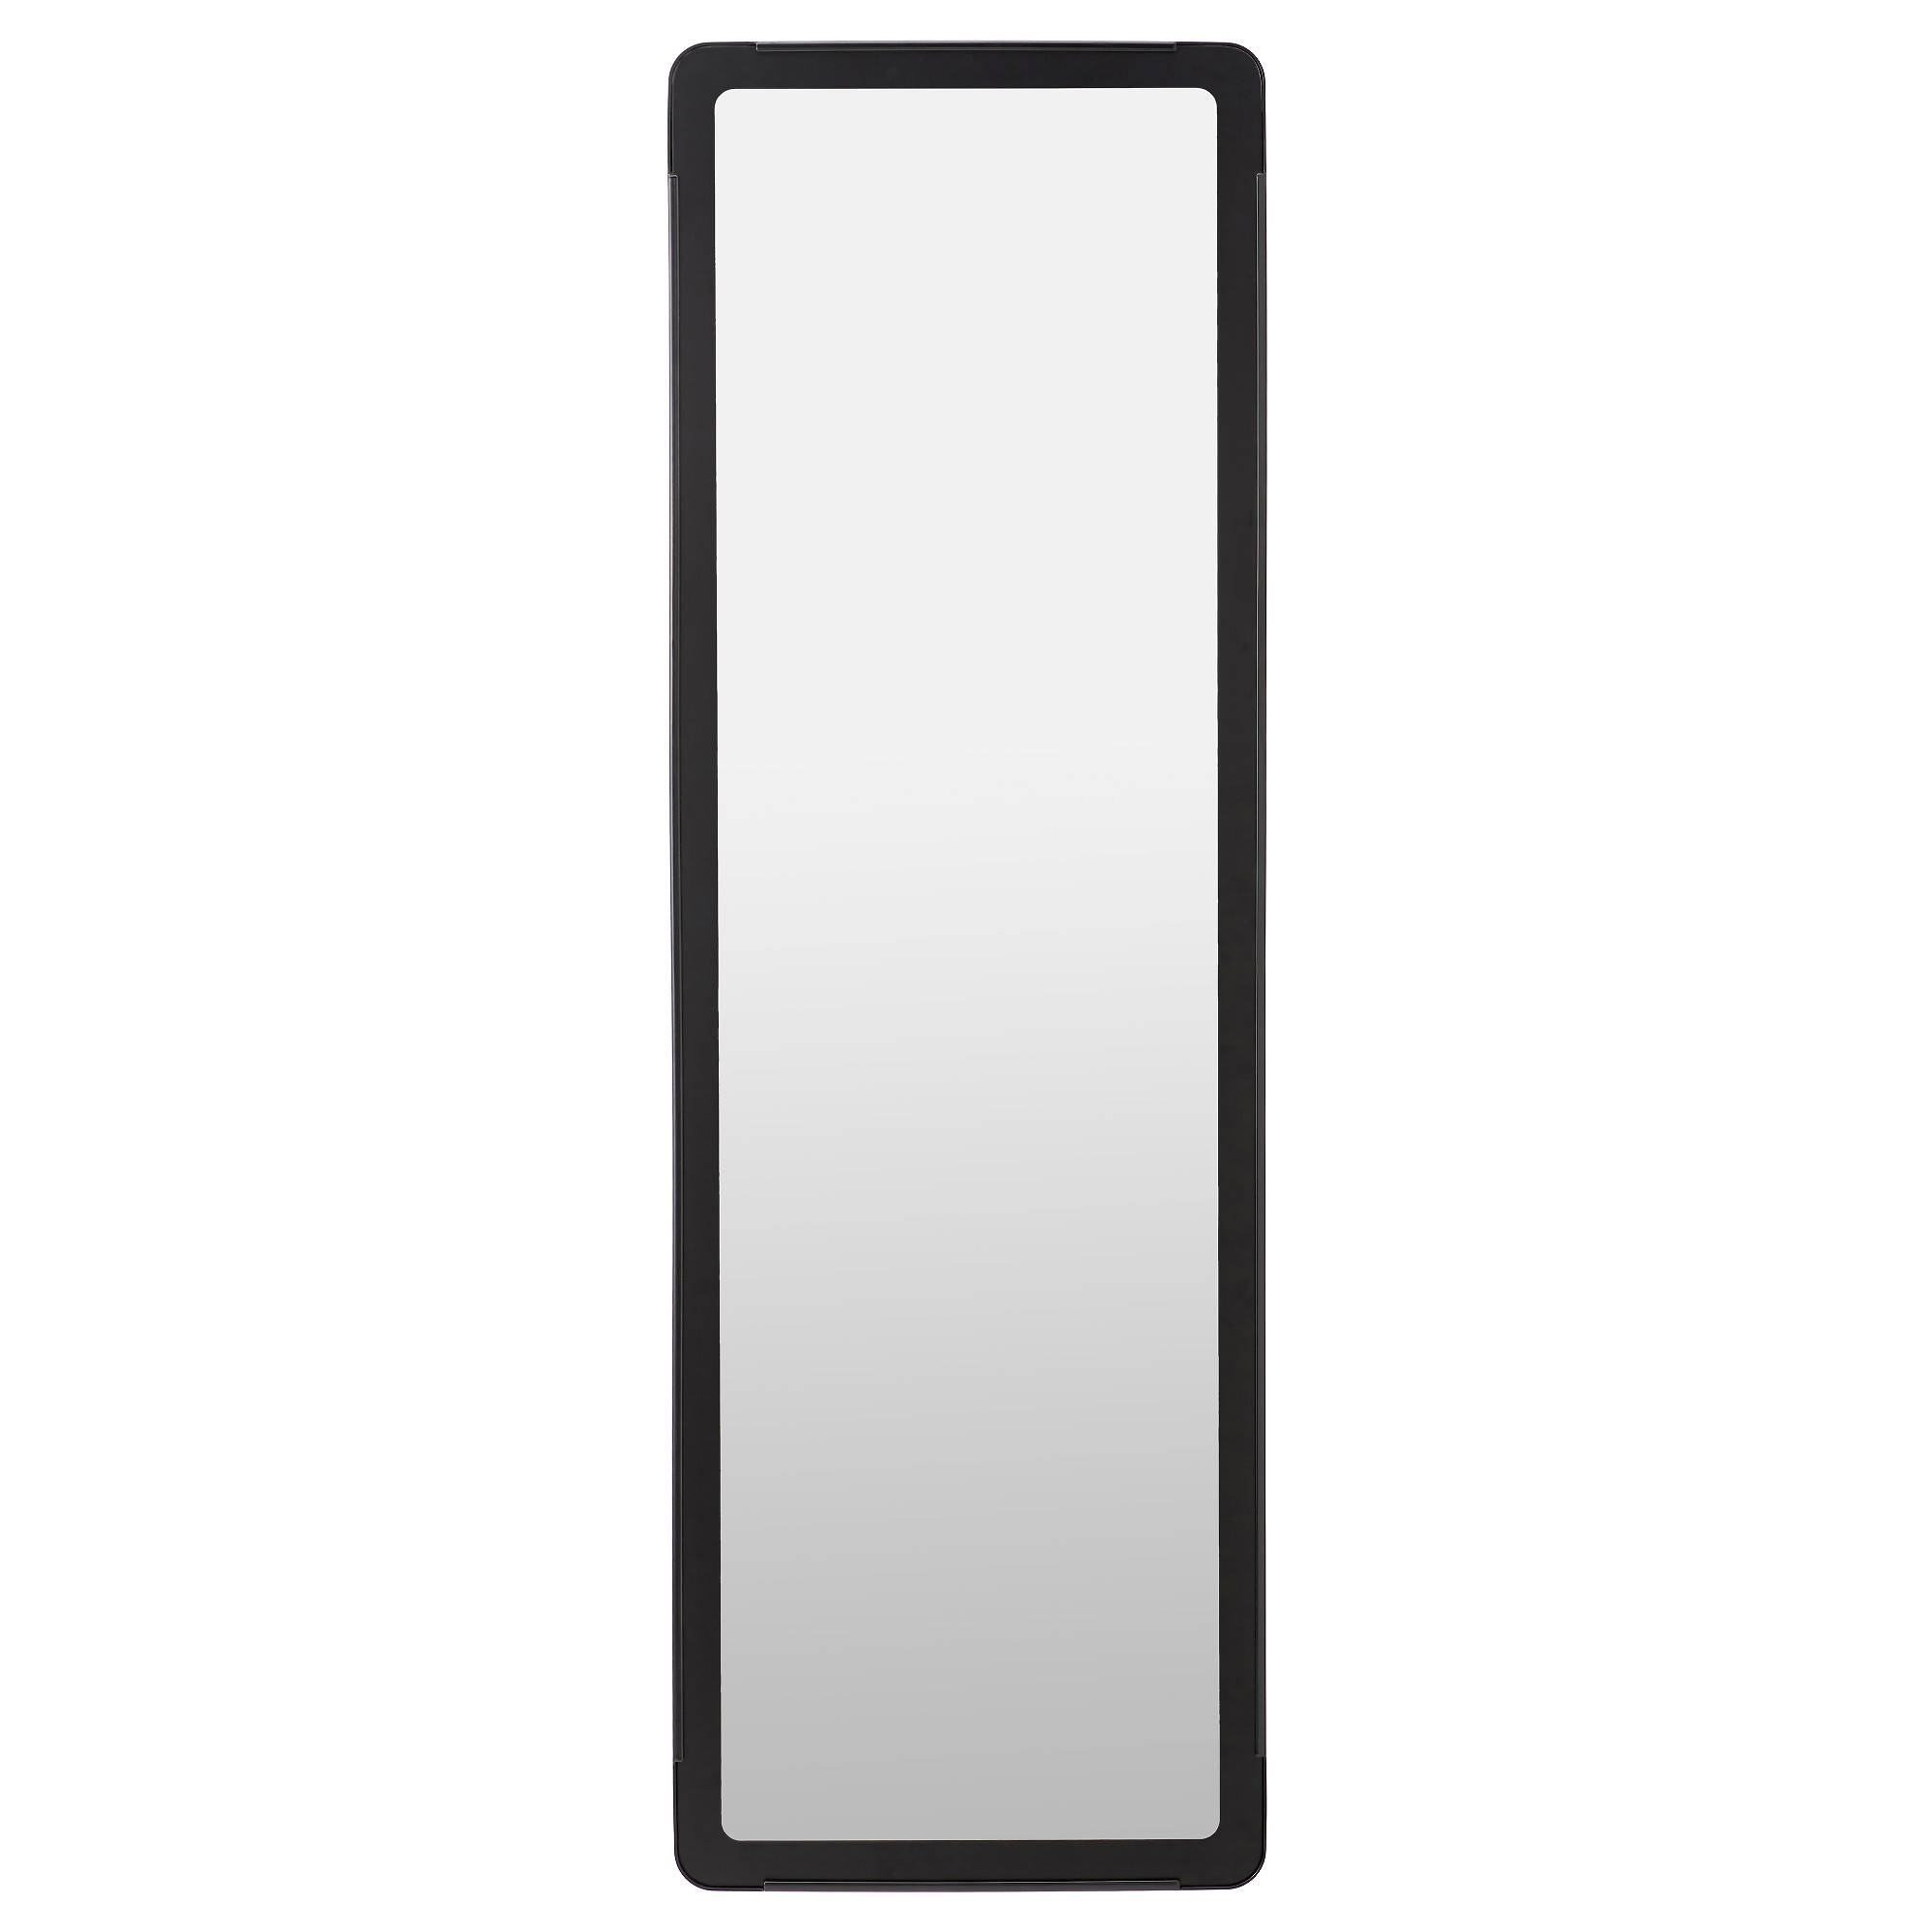 Full-Length Mirrors - Ikea pertaining to Huge Full Length Mirrors (Image 19 of 25)